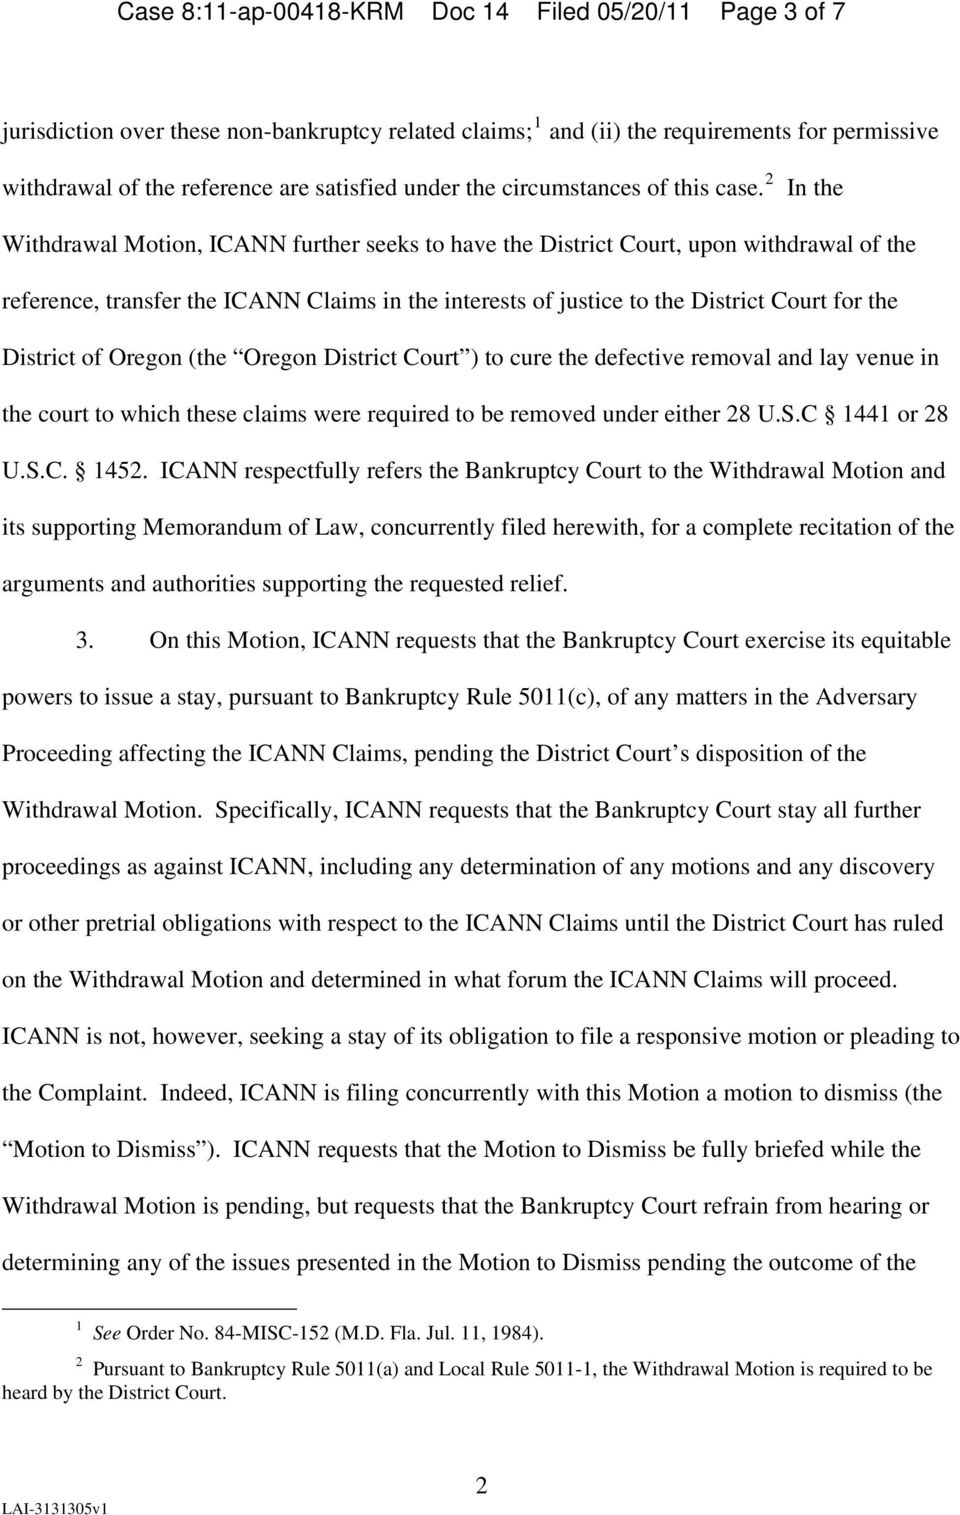 2 In the Withdrawal Motion, ICANN further seeks to have the District Court, upon withdrawal of the reference, transfer the ICANN Claims in the interests of justice to the District Court for the